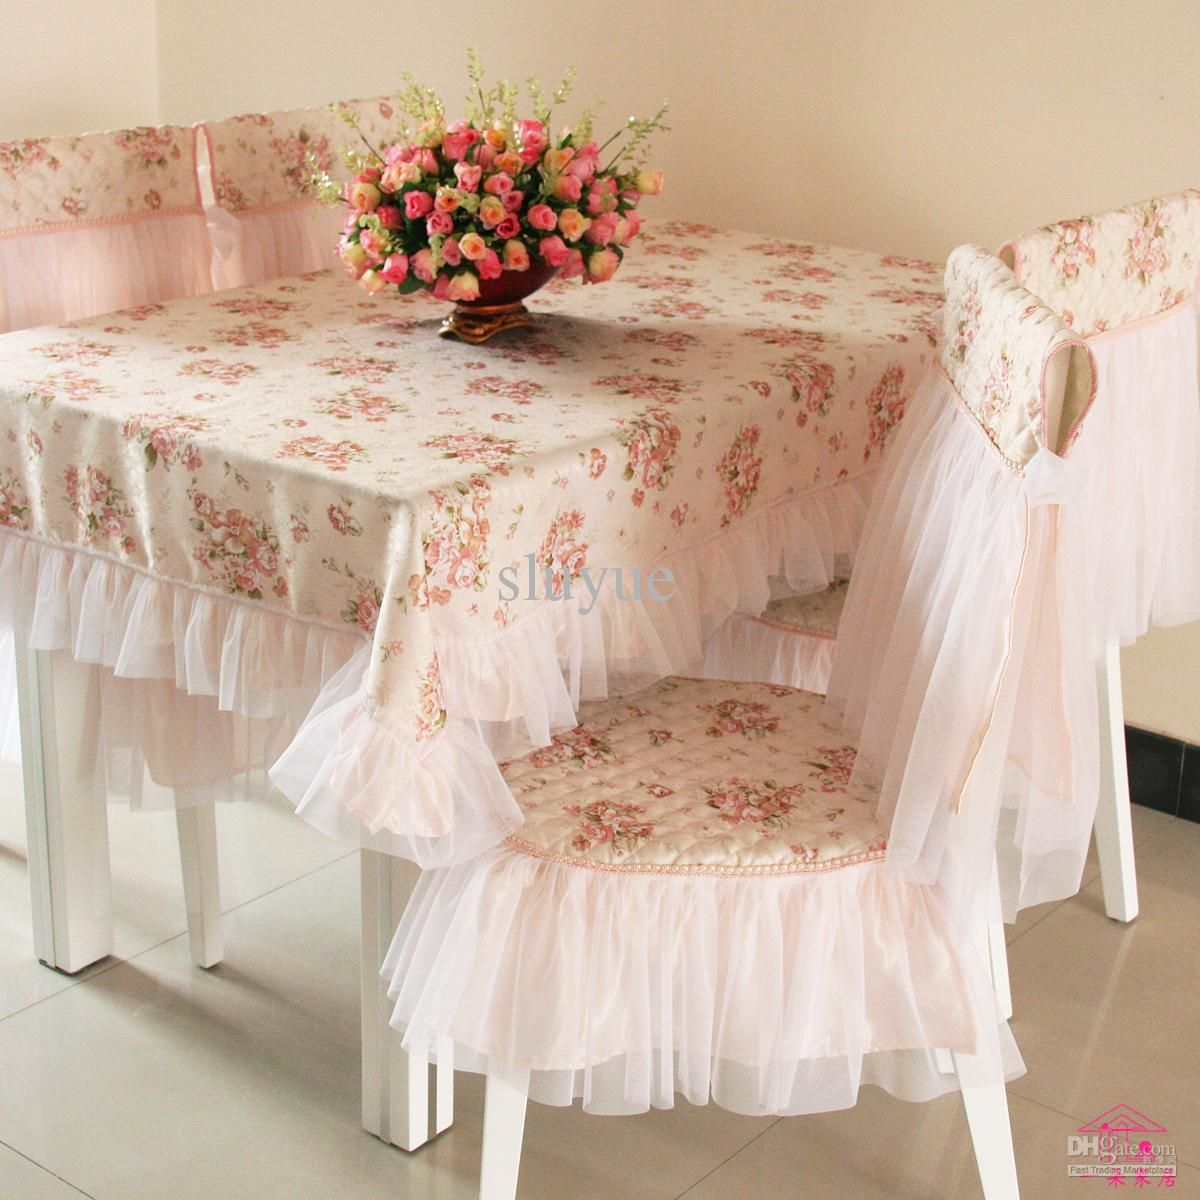 Dining covers google search sewing for sweet home - Sweet home muebles ...